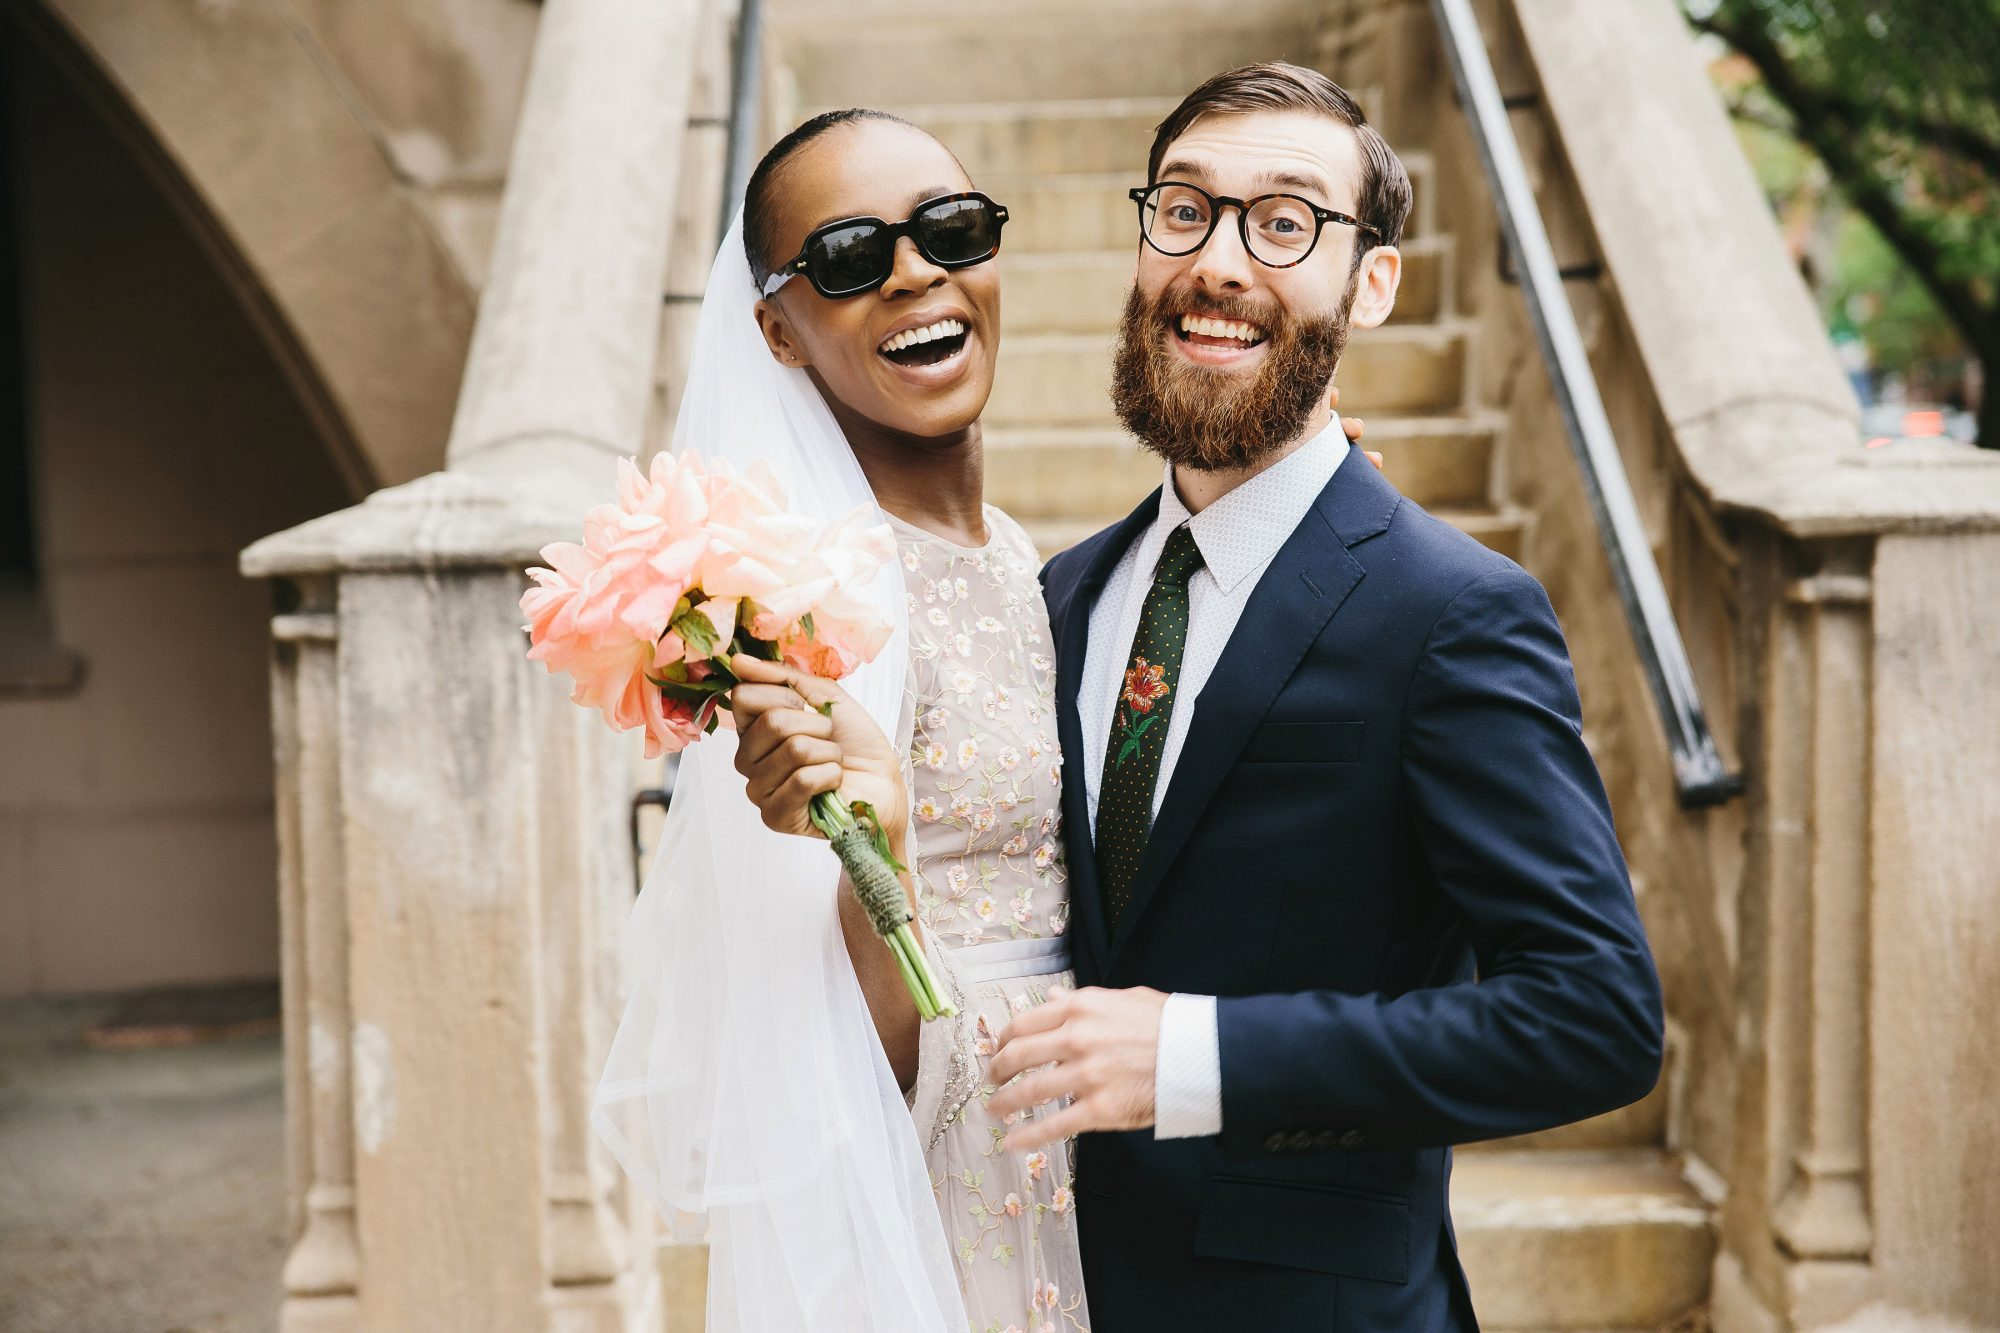 lola quinlan elopement couple smiles sunglasses